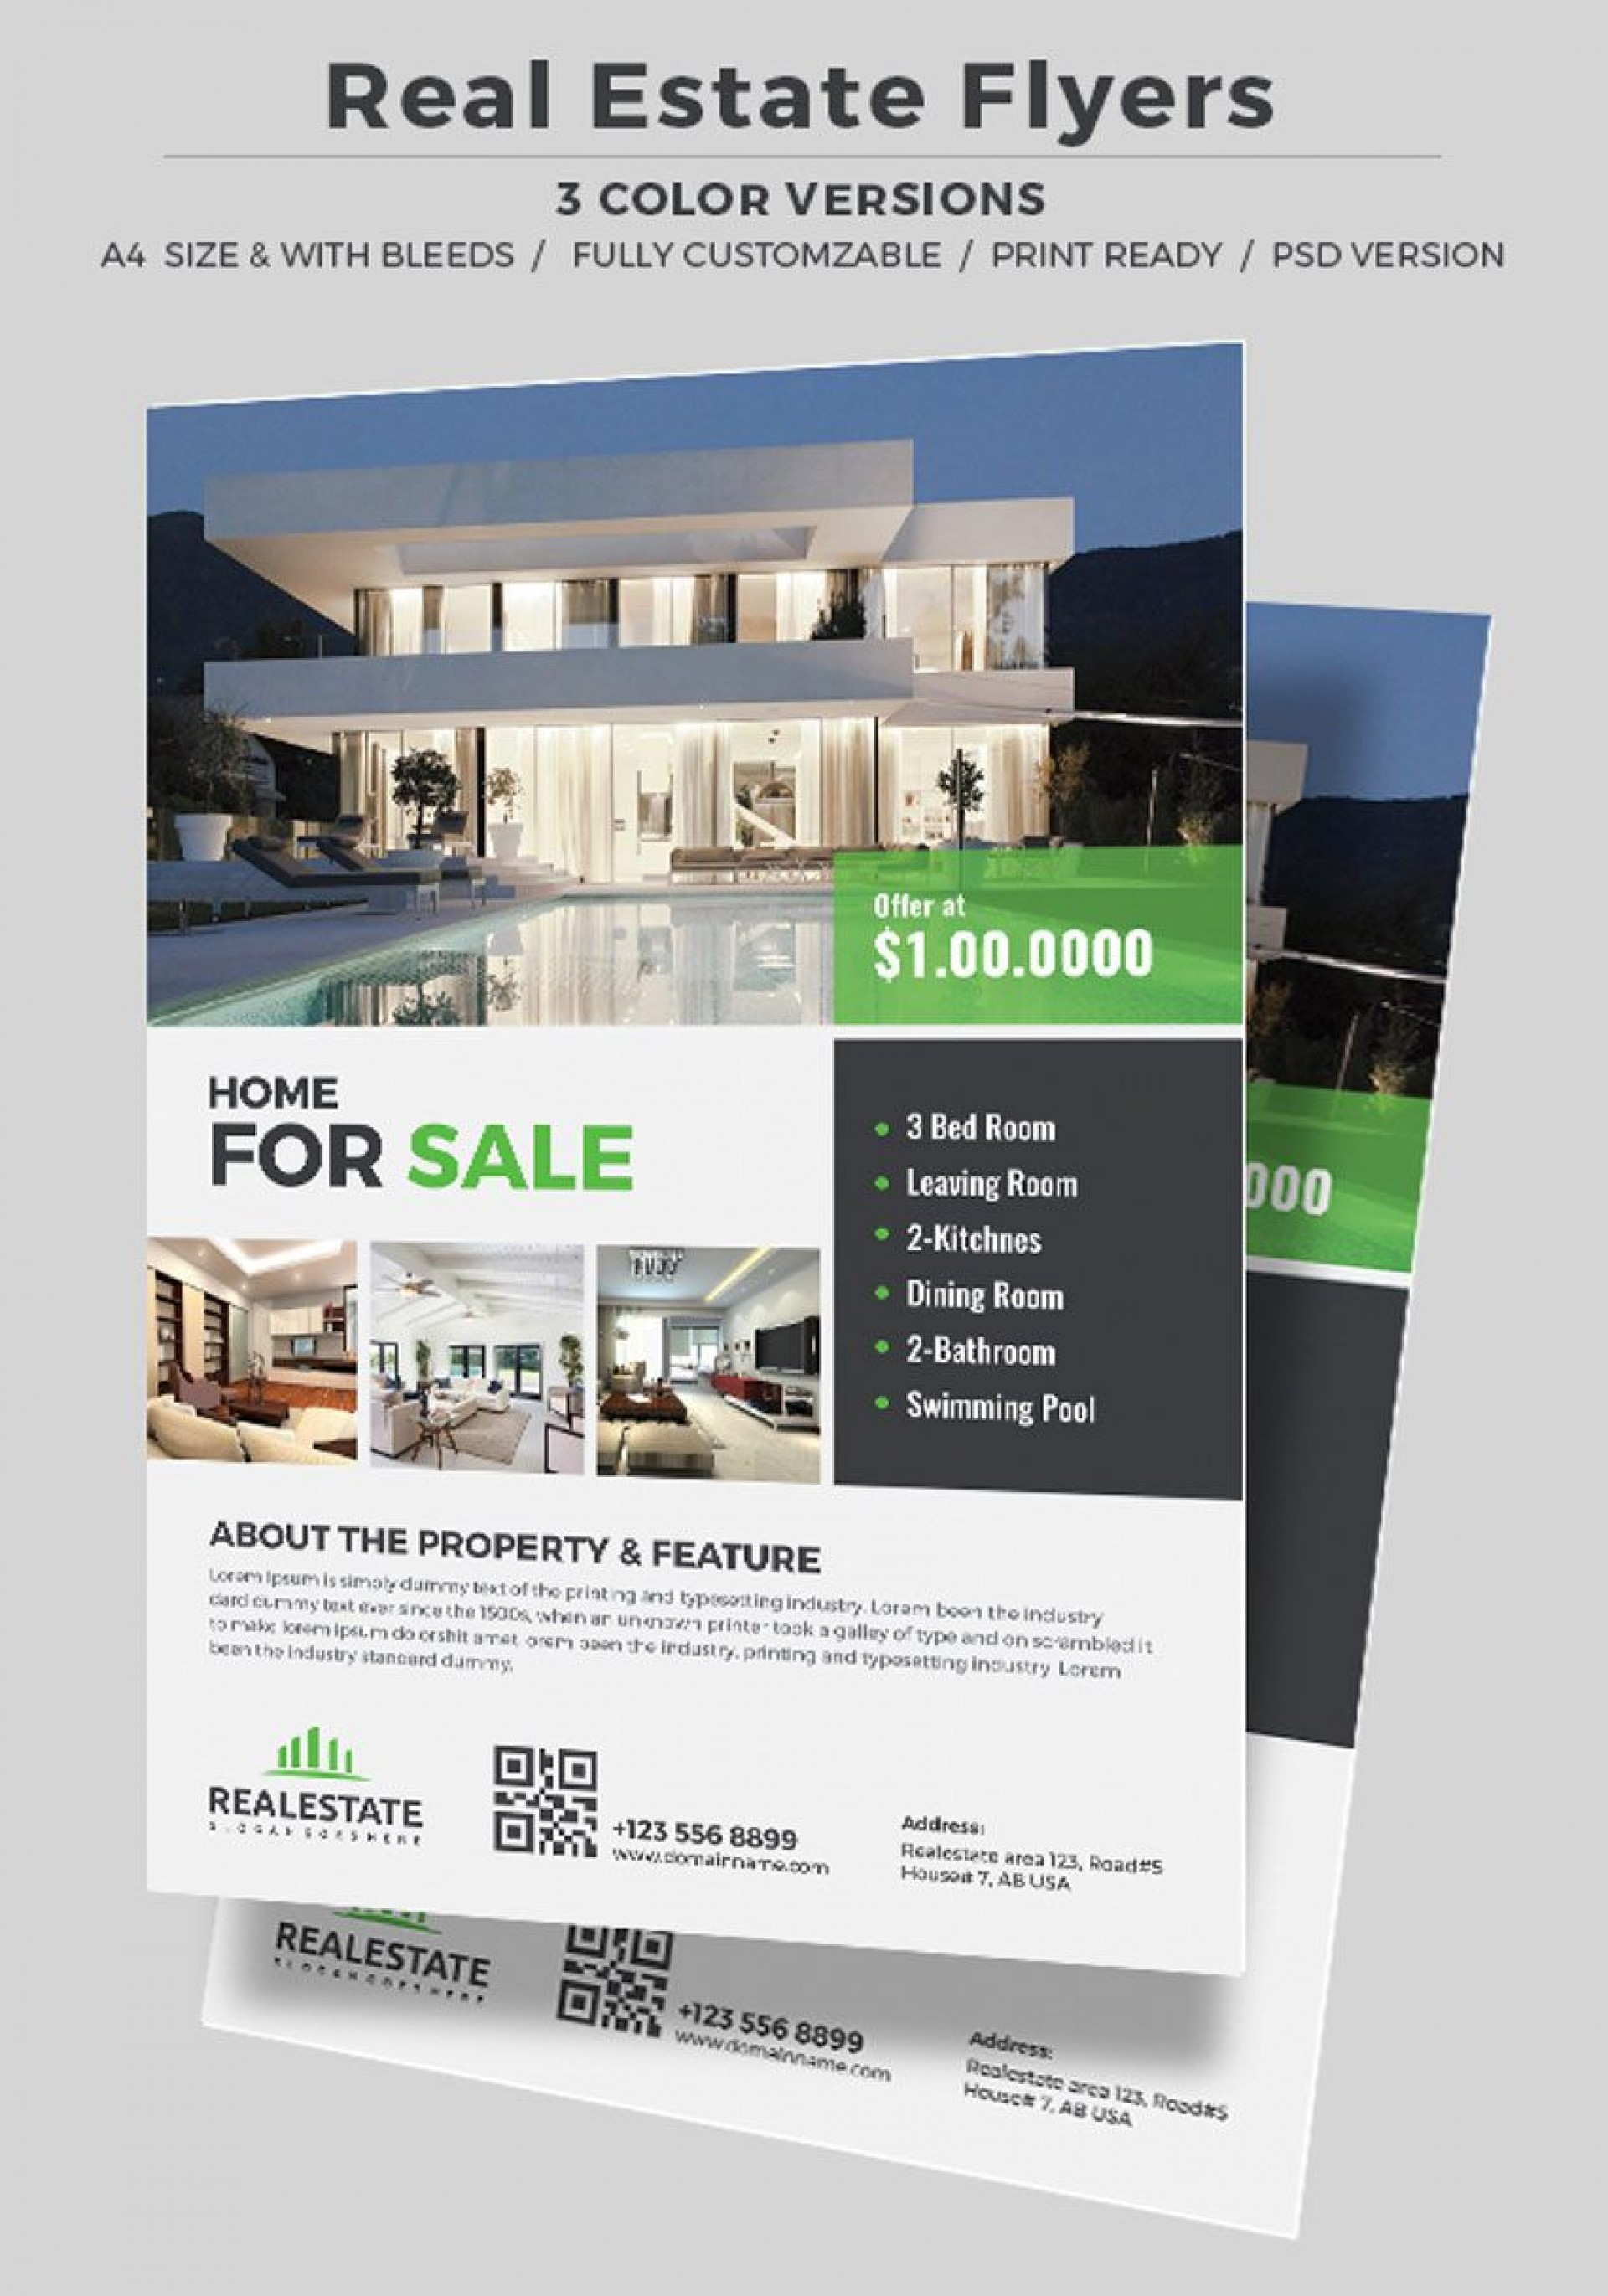 006 Surprising Real Estate Ad Template High Def  Templates Commercial Free Listing Flyer Instagram1920